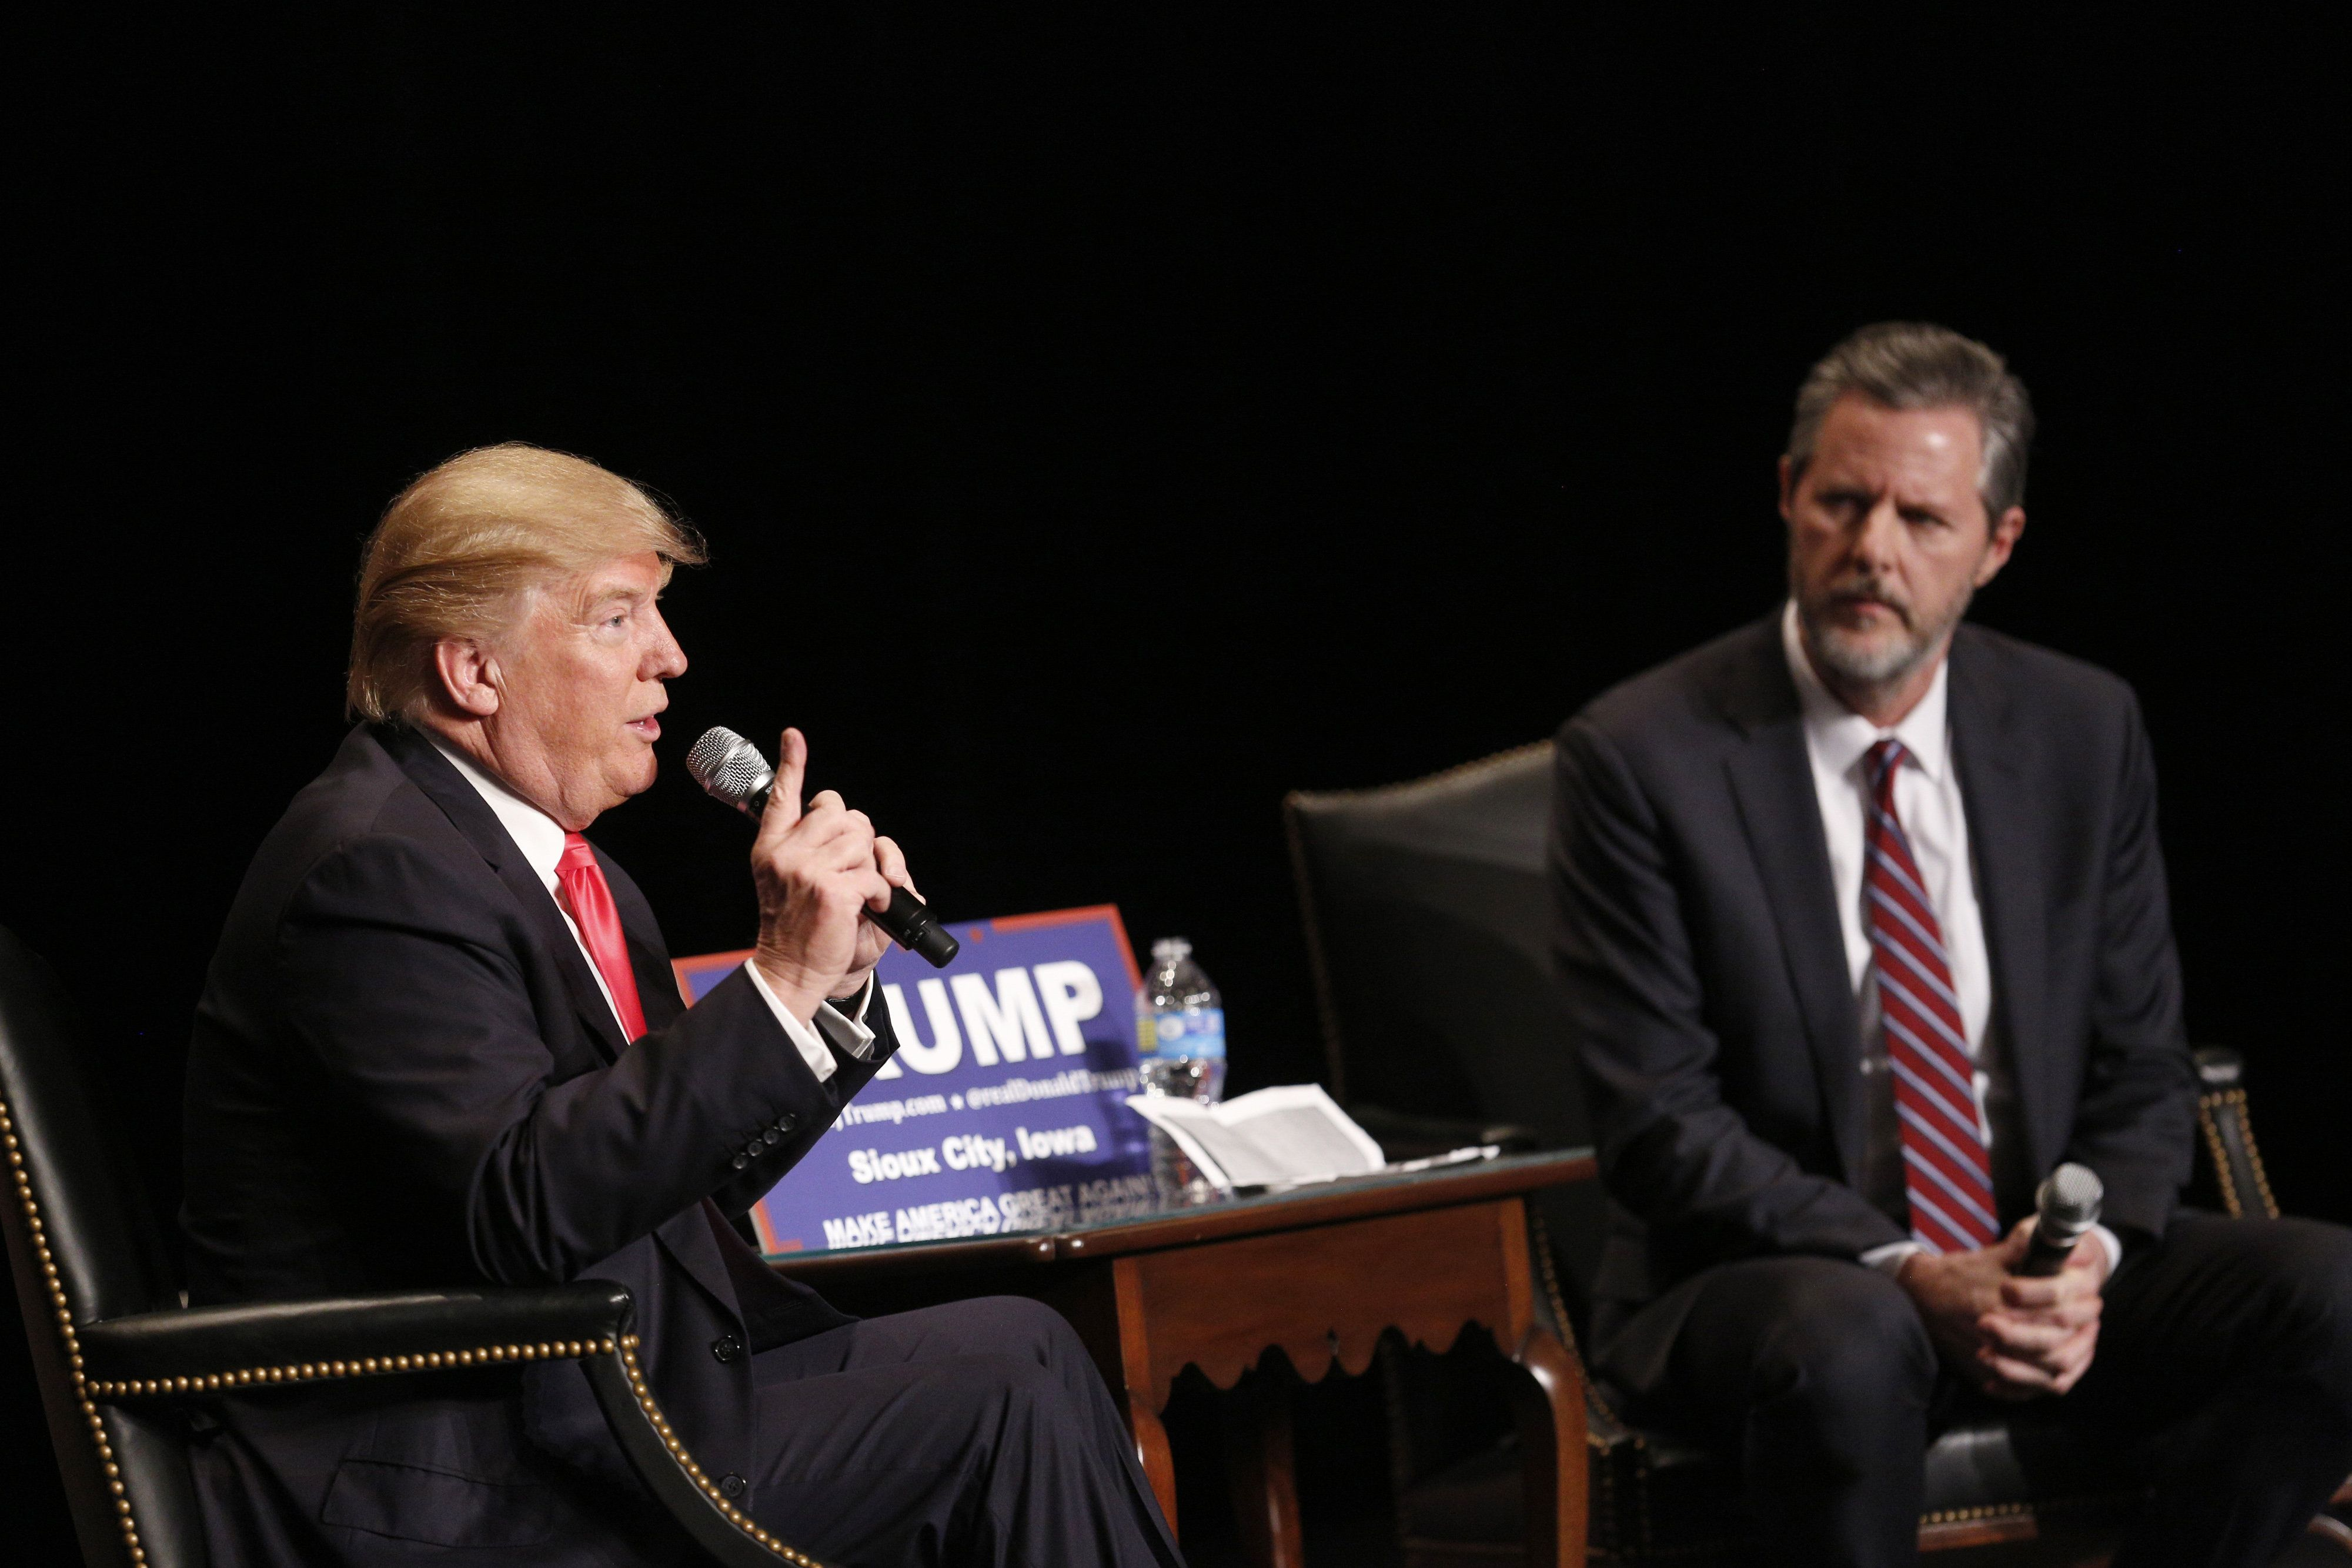 Jerry Falwell Jr. sits with Donald Trump during a campaign campaign event in January. Falwell, who has endorsed Trump, on Thu